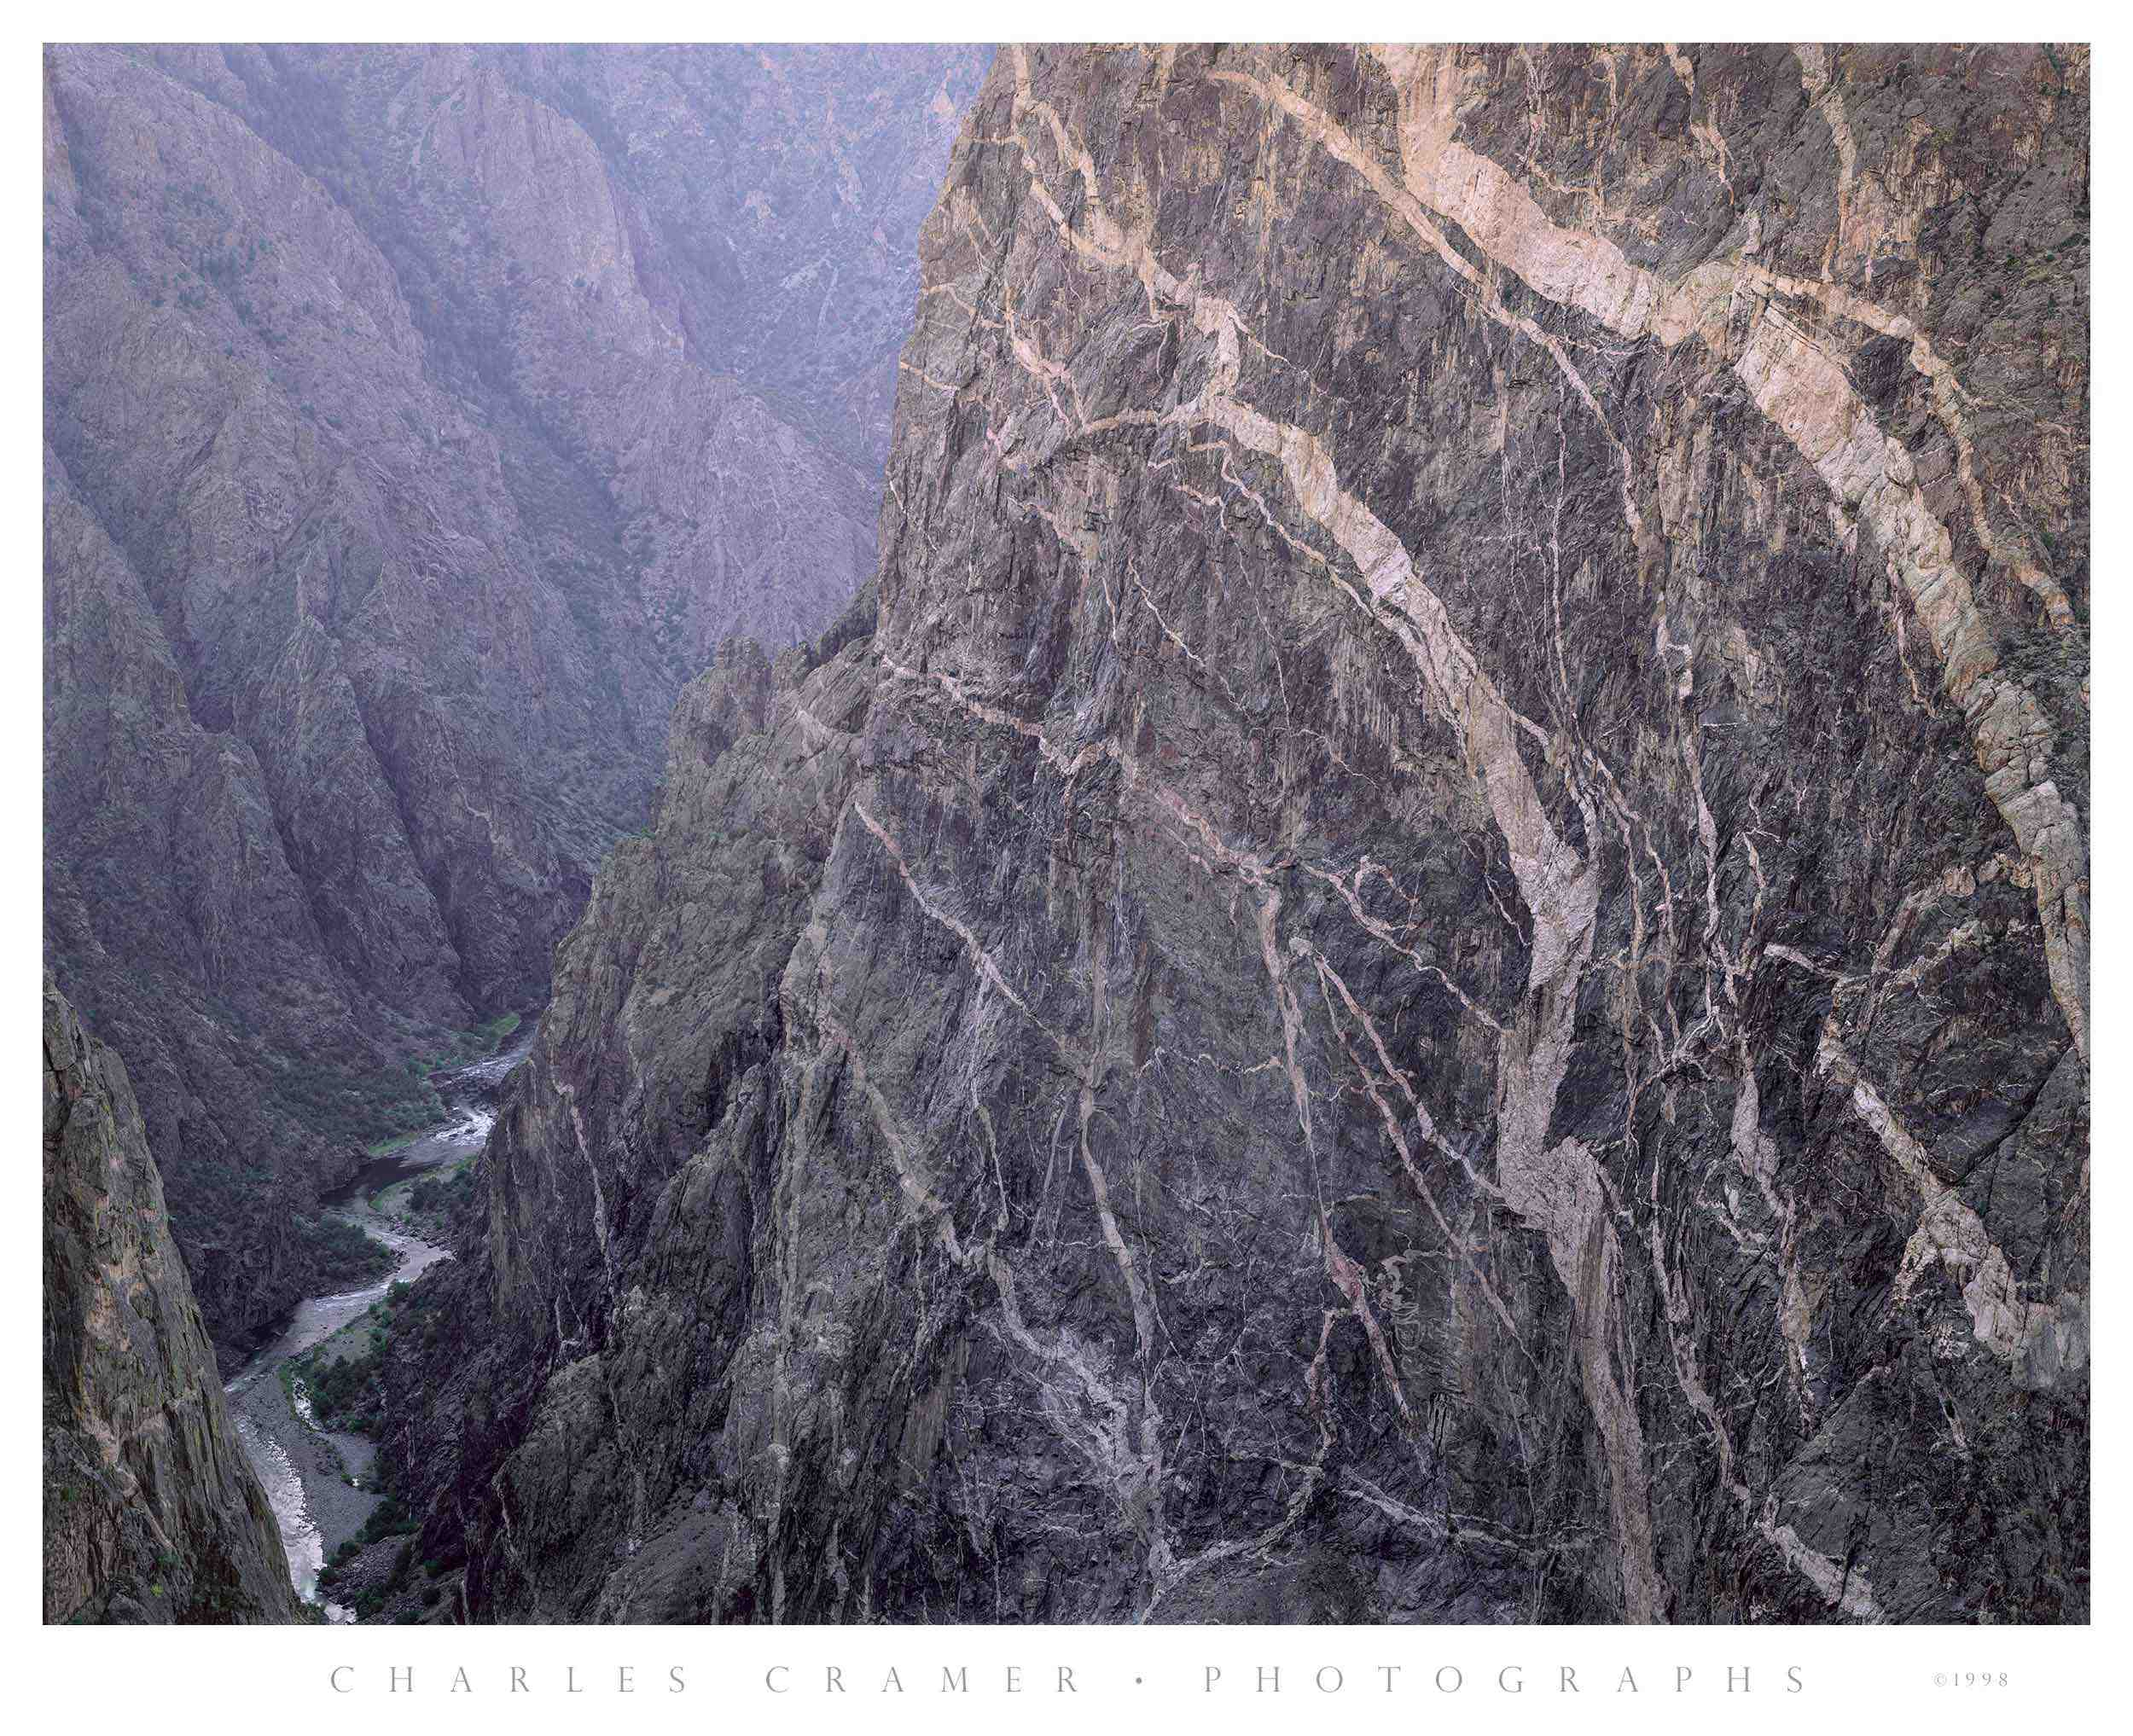 Evening,  the  Painted Wall ,  Black Canyon of the Gunnison